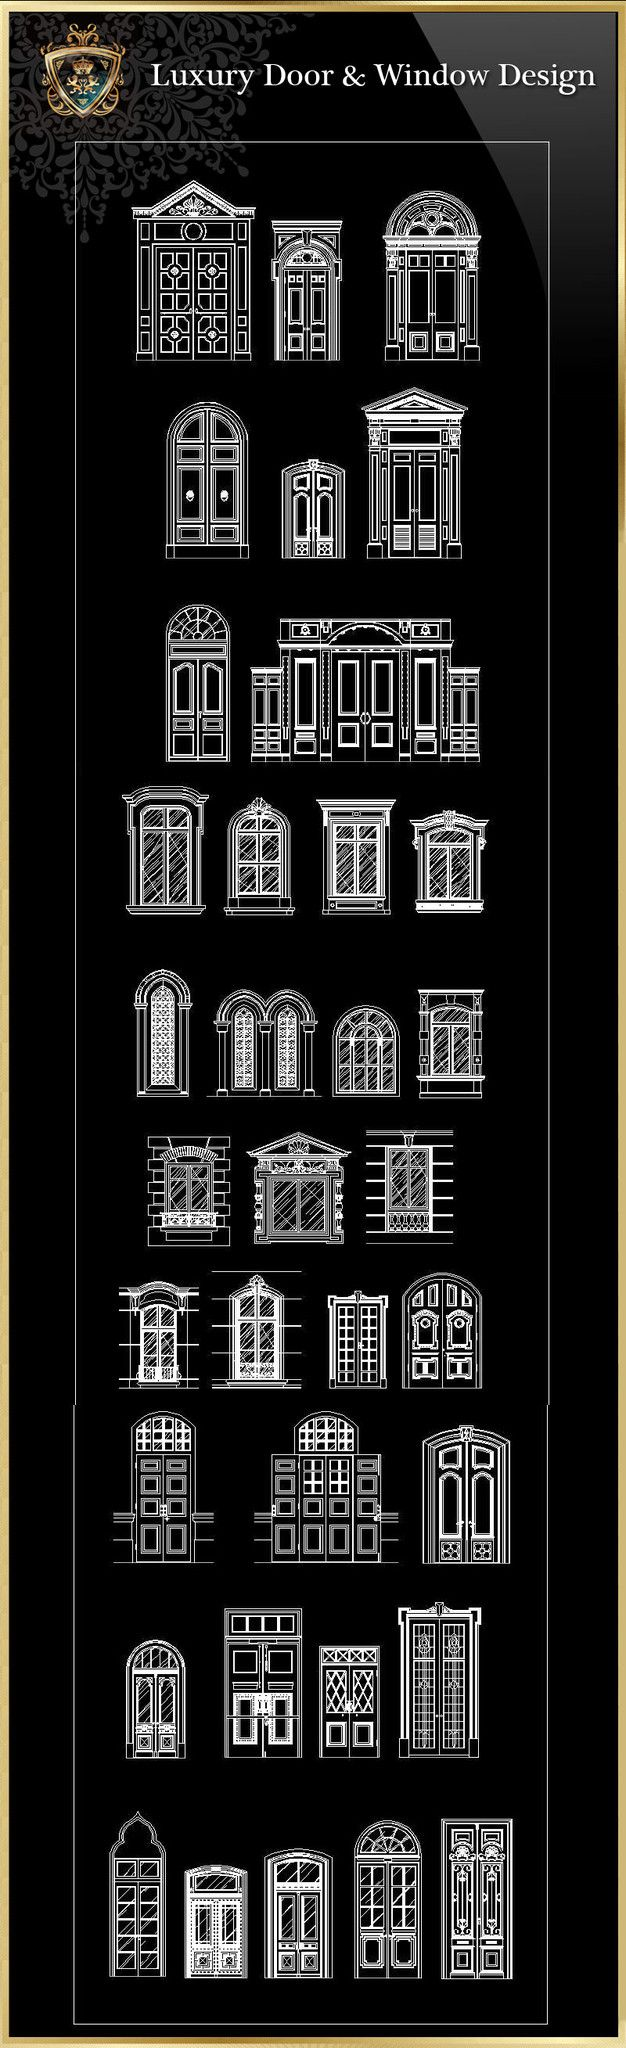 Royal Architecture Door & Window Design – CAD Design | Free CAD Blocks,Drawings,Details